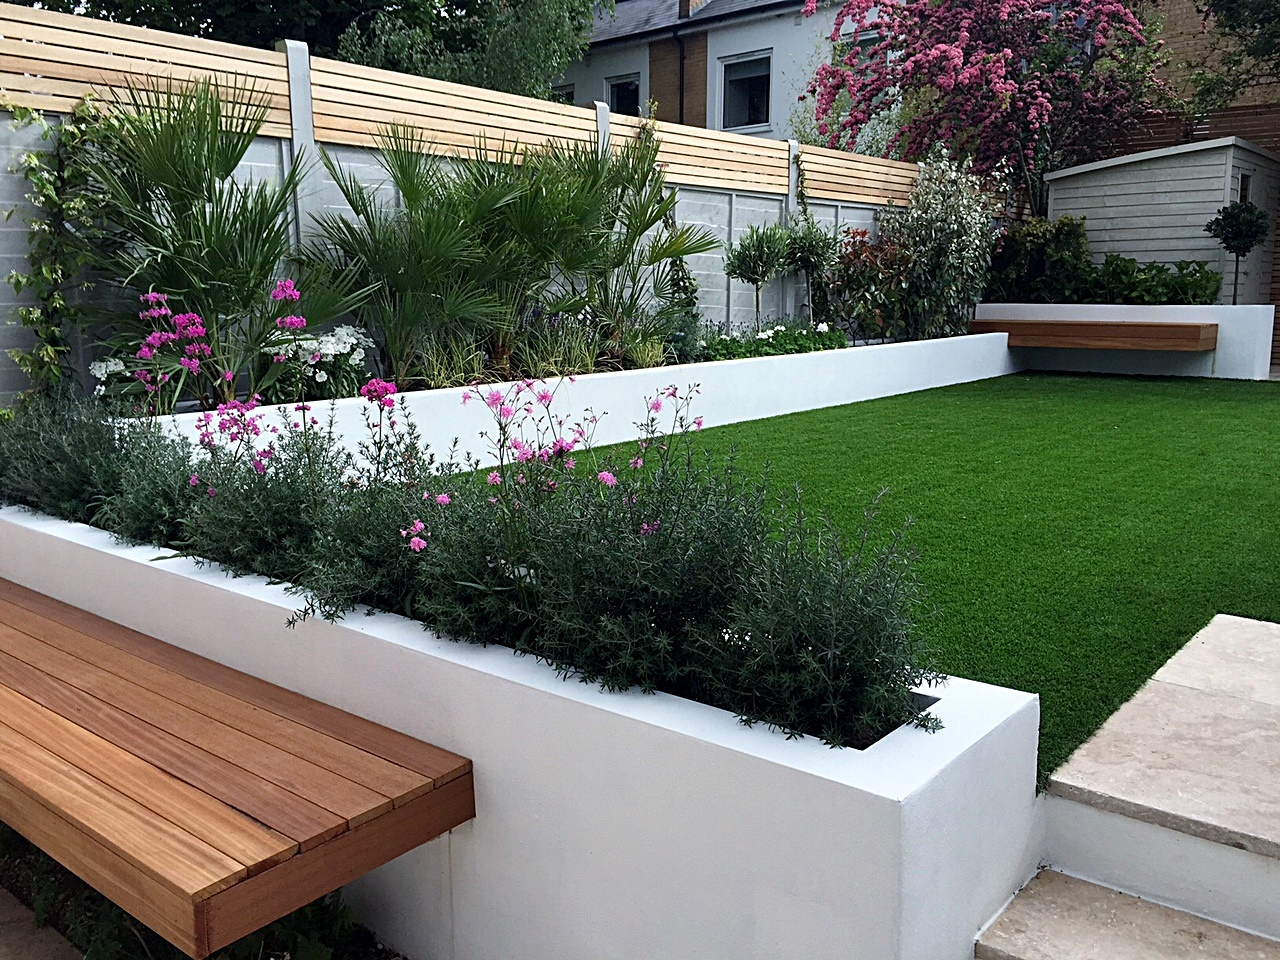 modern garden design fulham chelsea clapham grass travertine paving peckham london garden design. Black Bedroom Furniture Sets. Home Design Ideas